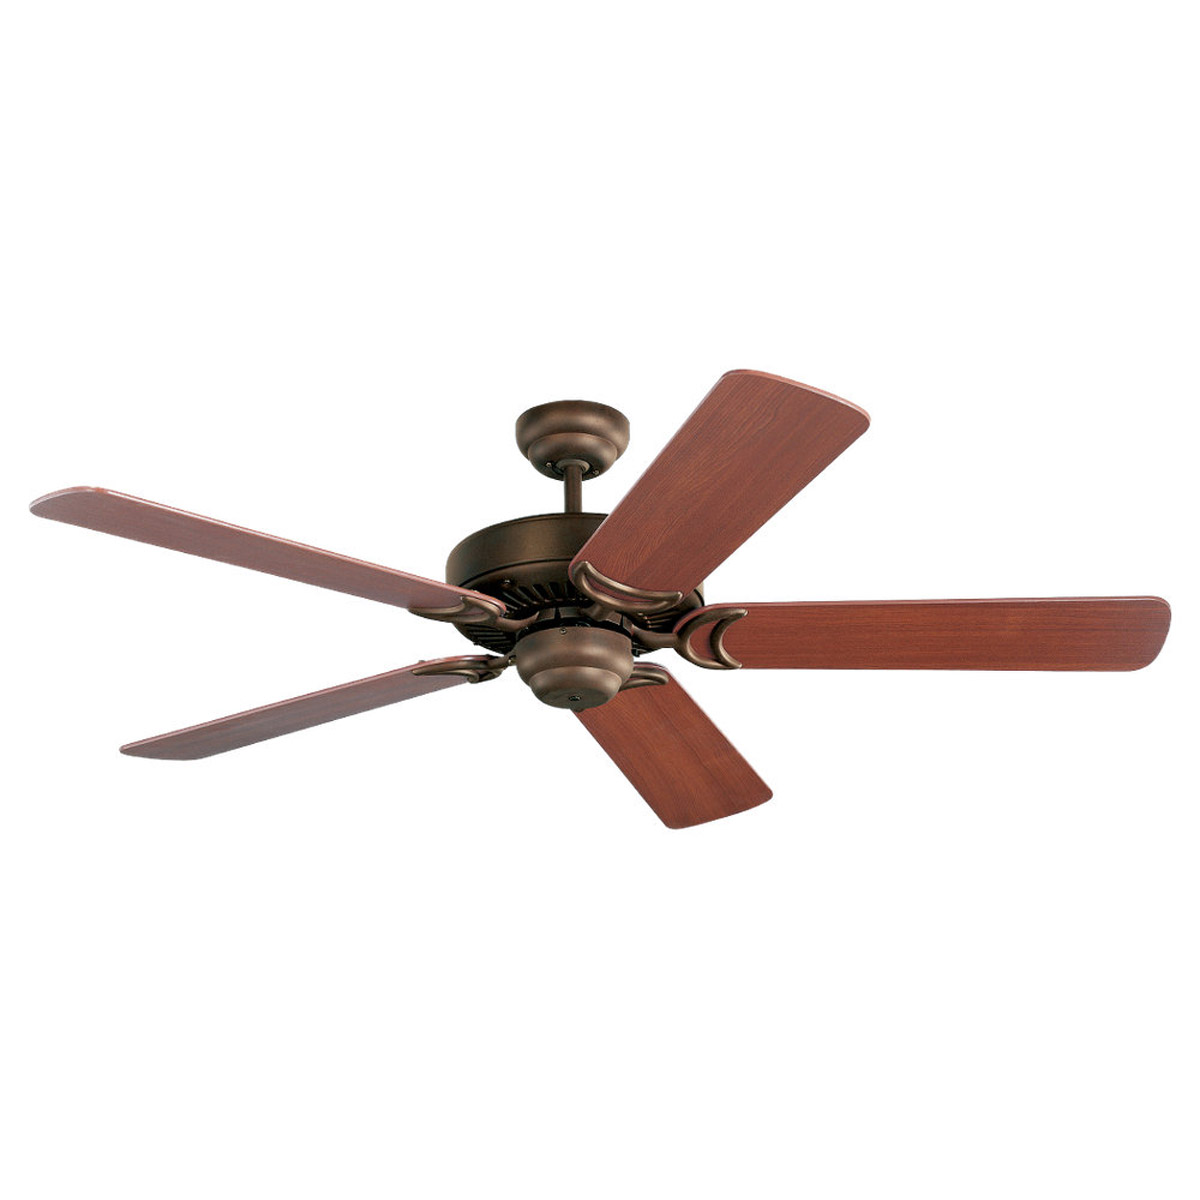 Sea Gull Lighting 52in Celebrity Deluxe Ceiling Fan in Misted Bronze 1535-814